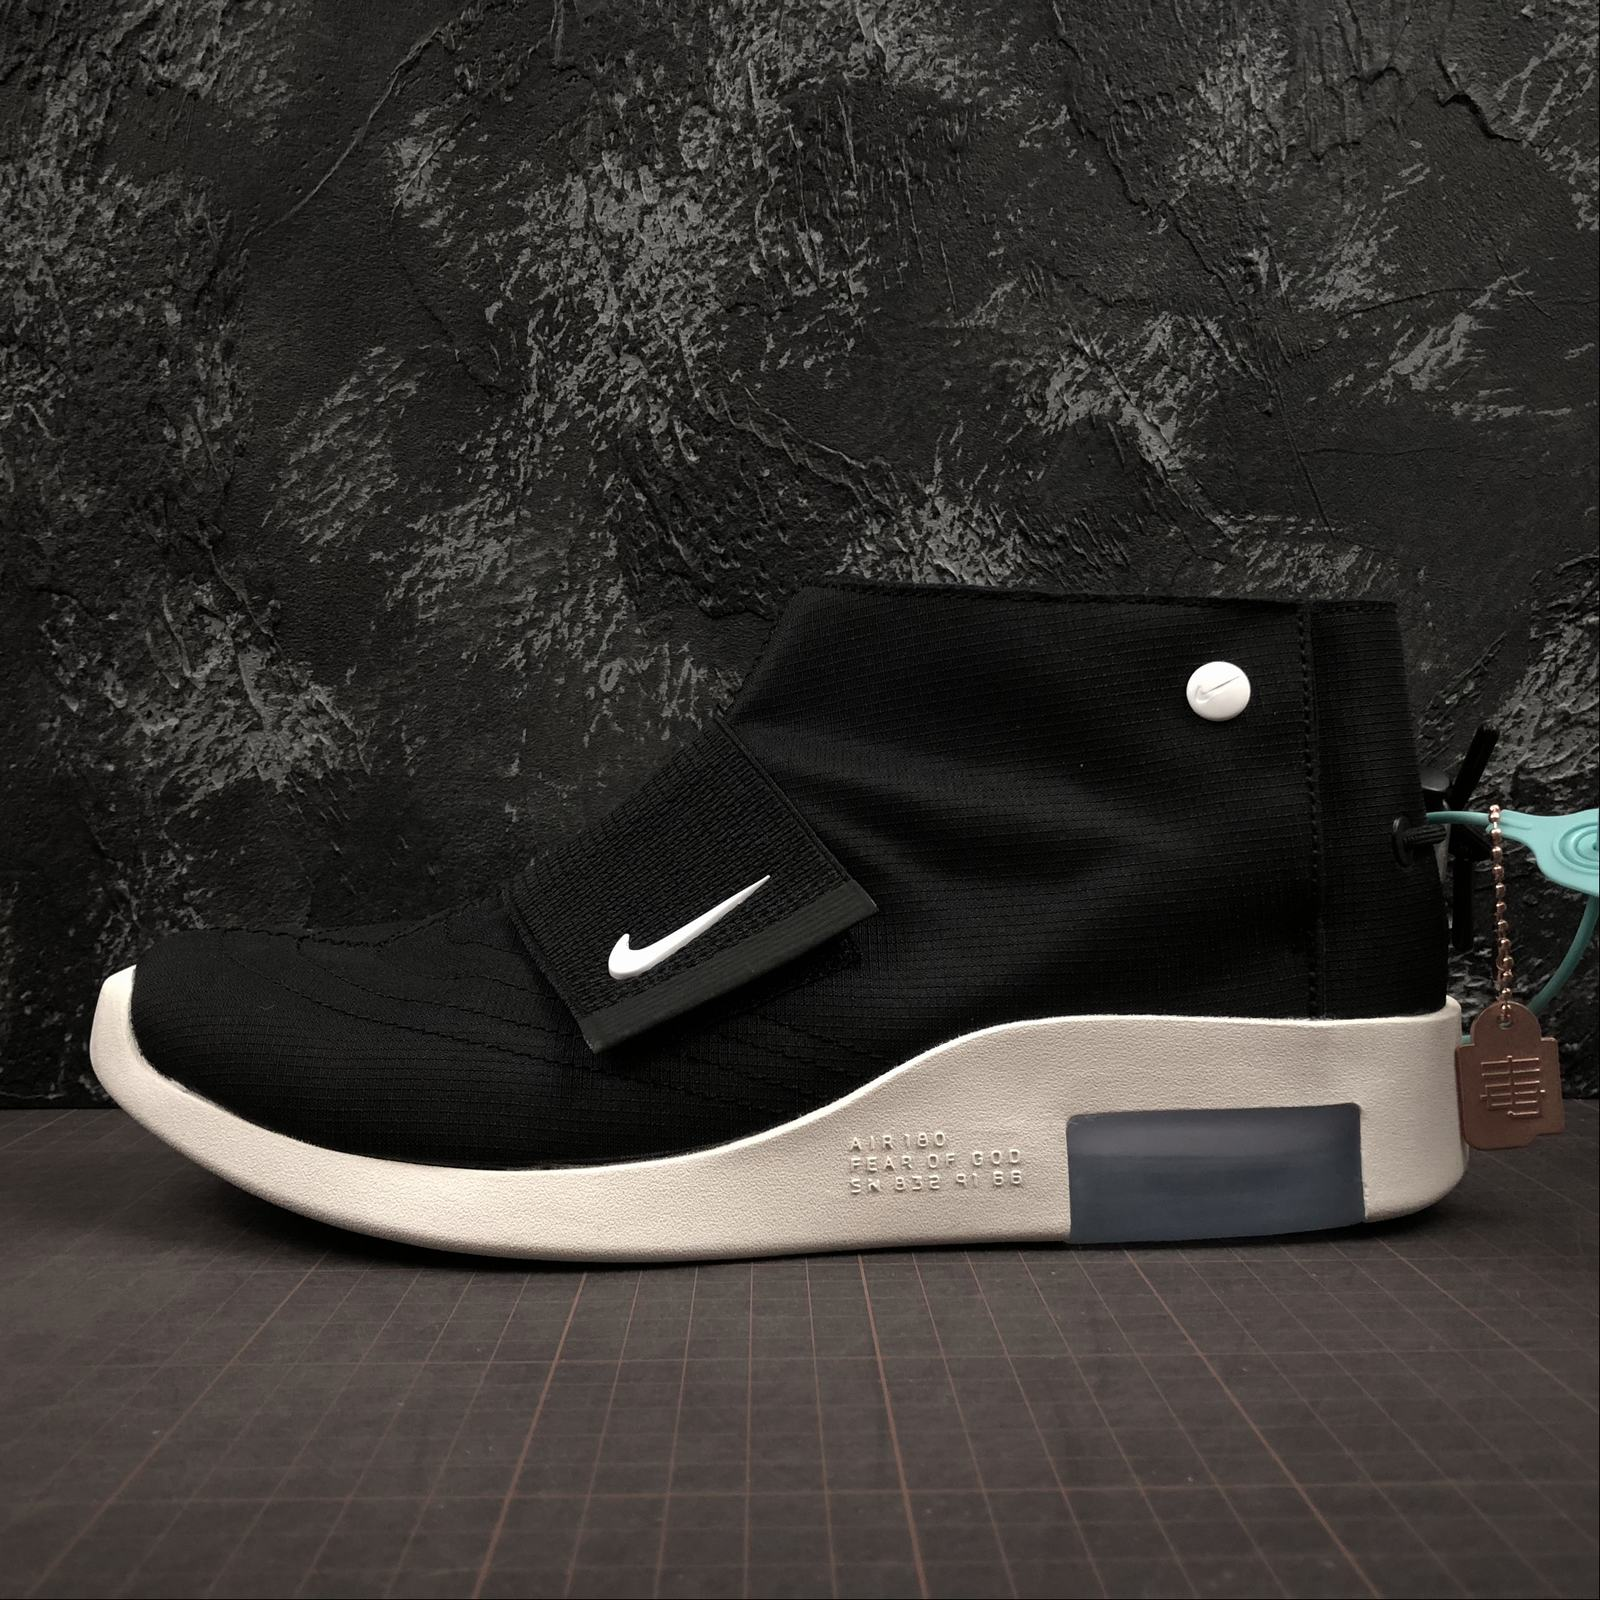 Мужские кроссовки Nike Air Fear Of God Mid Men Black